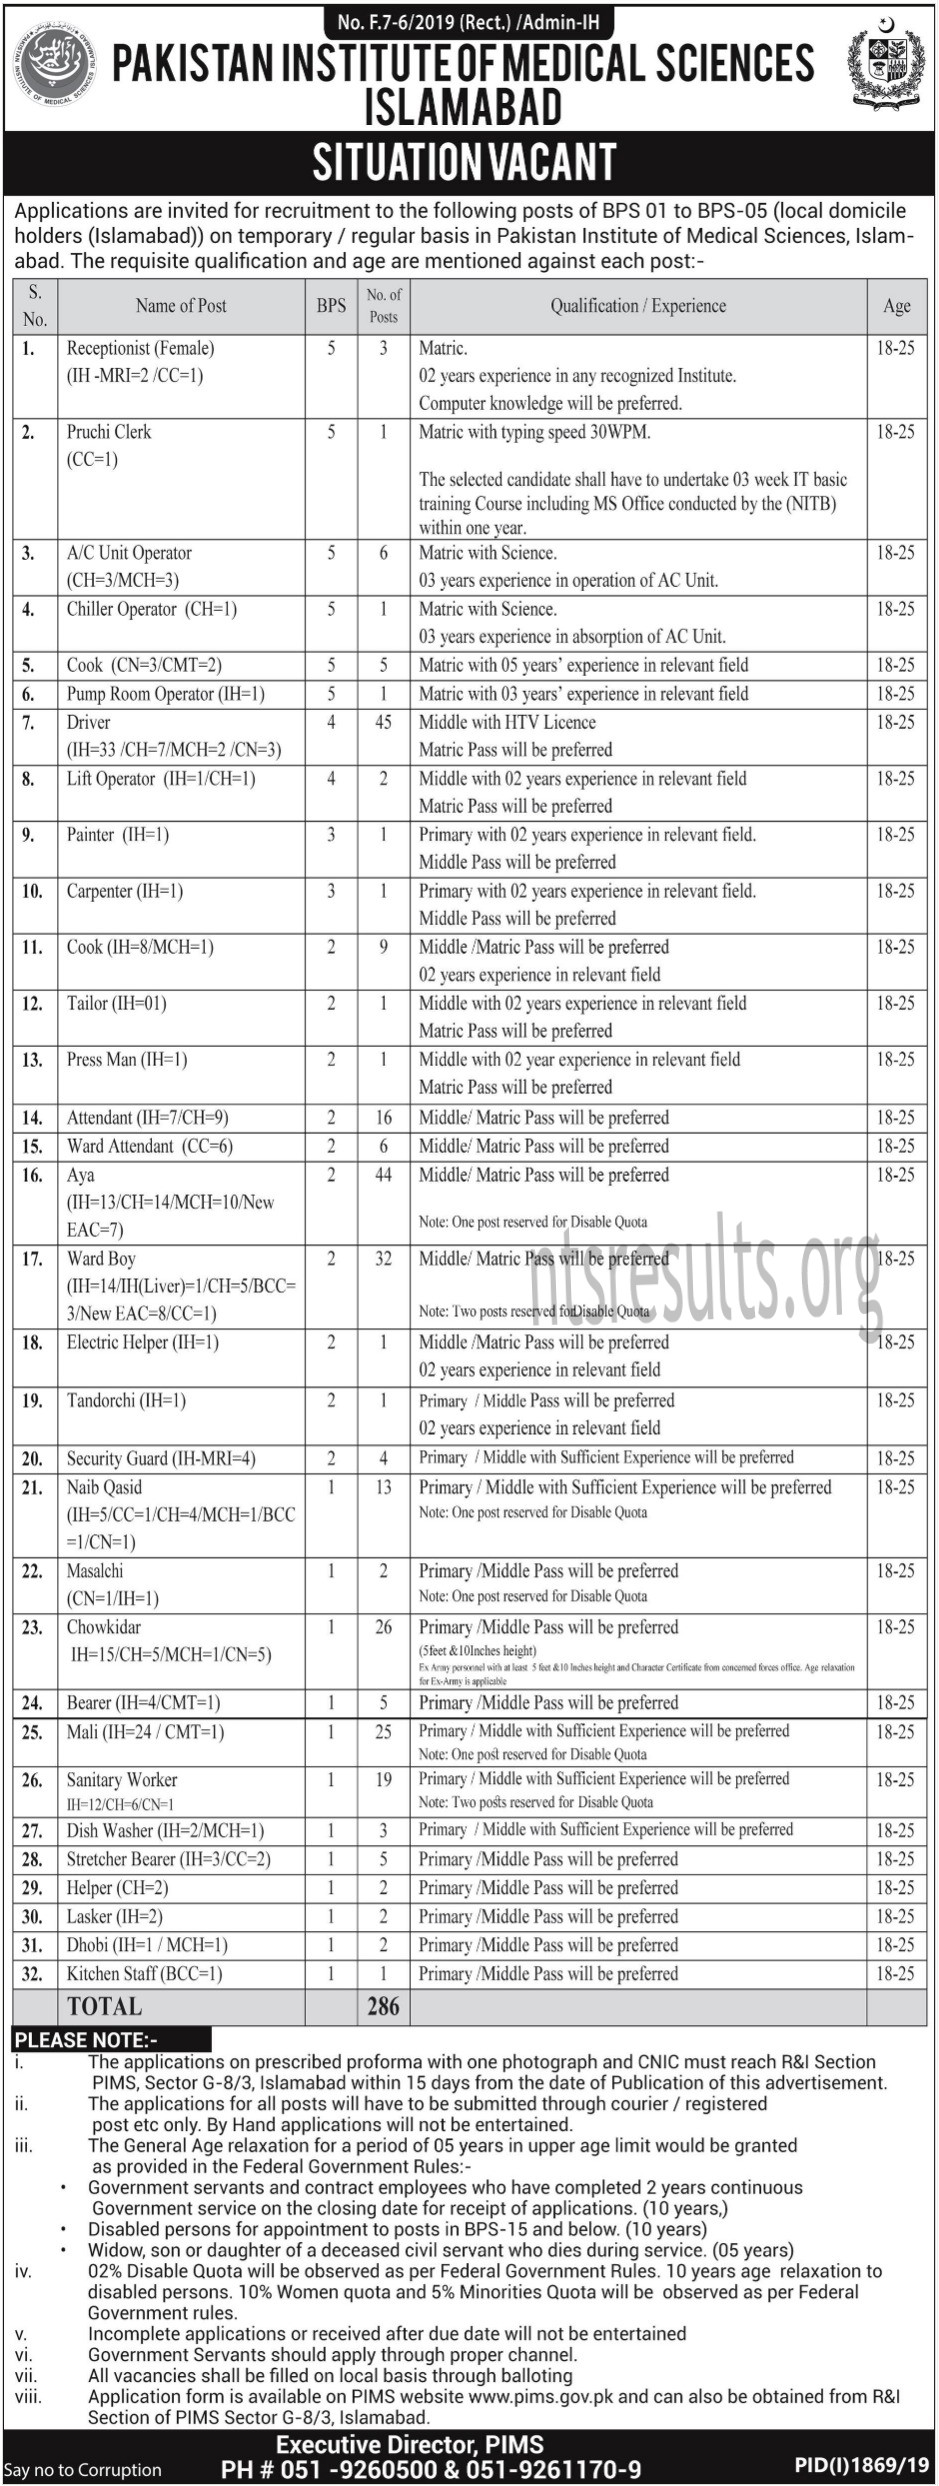 Pakistan Institute of Medical Sciences PIMS Jobs Via OTS